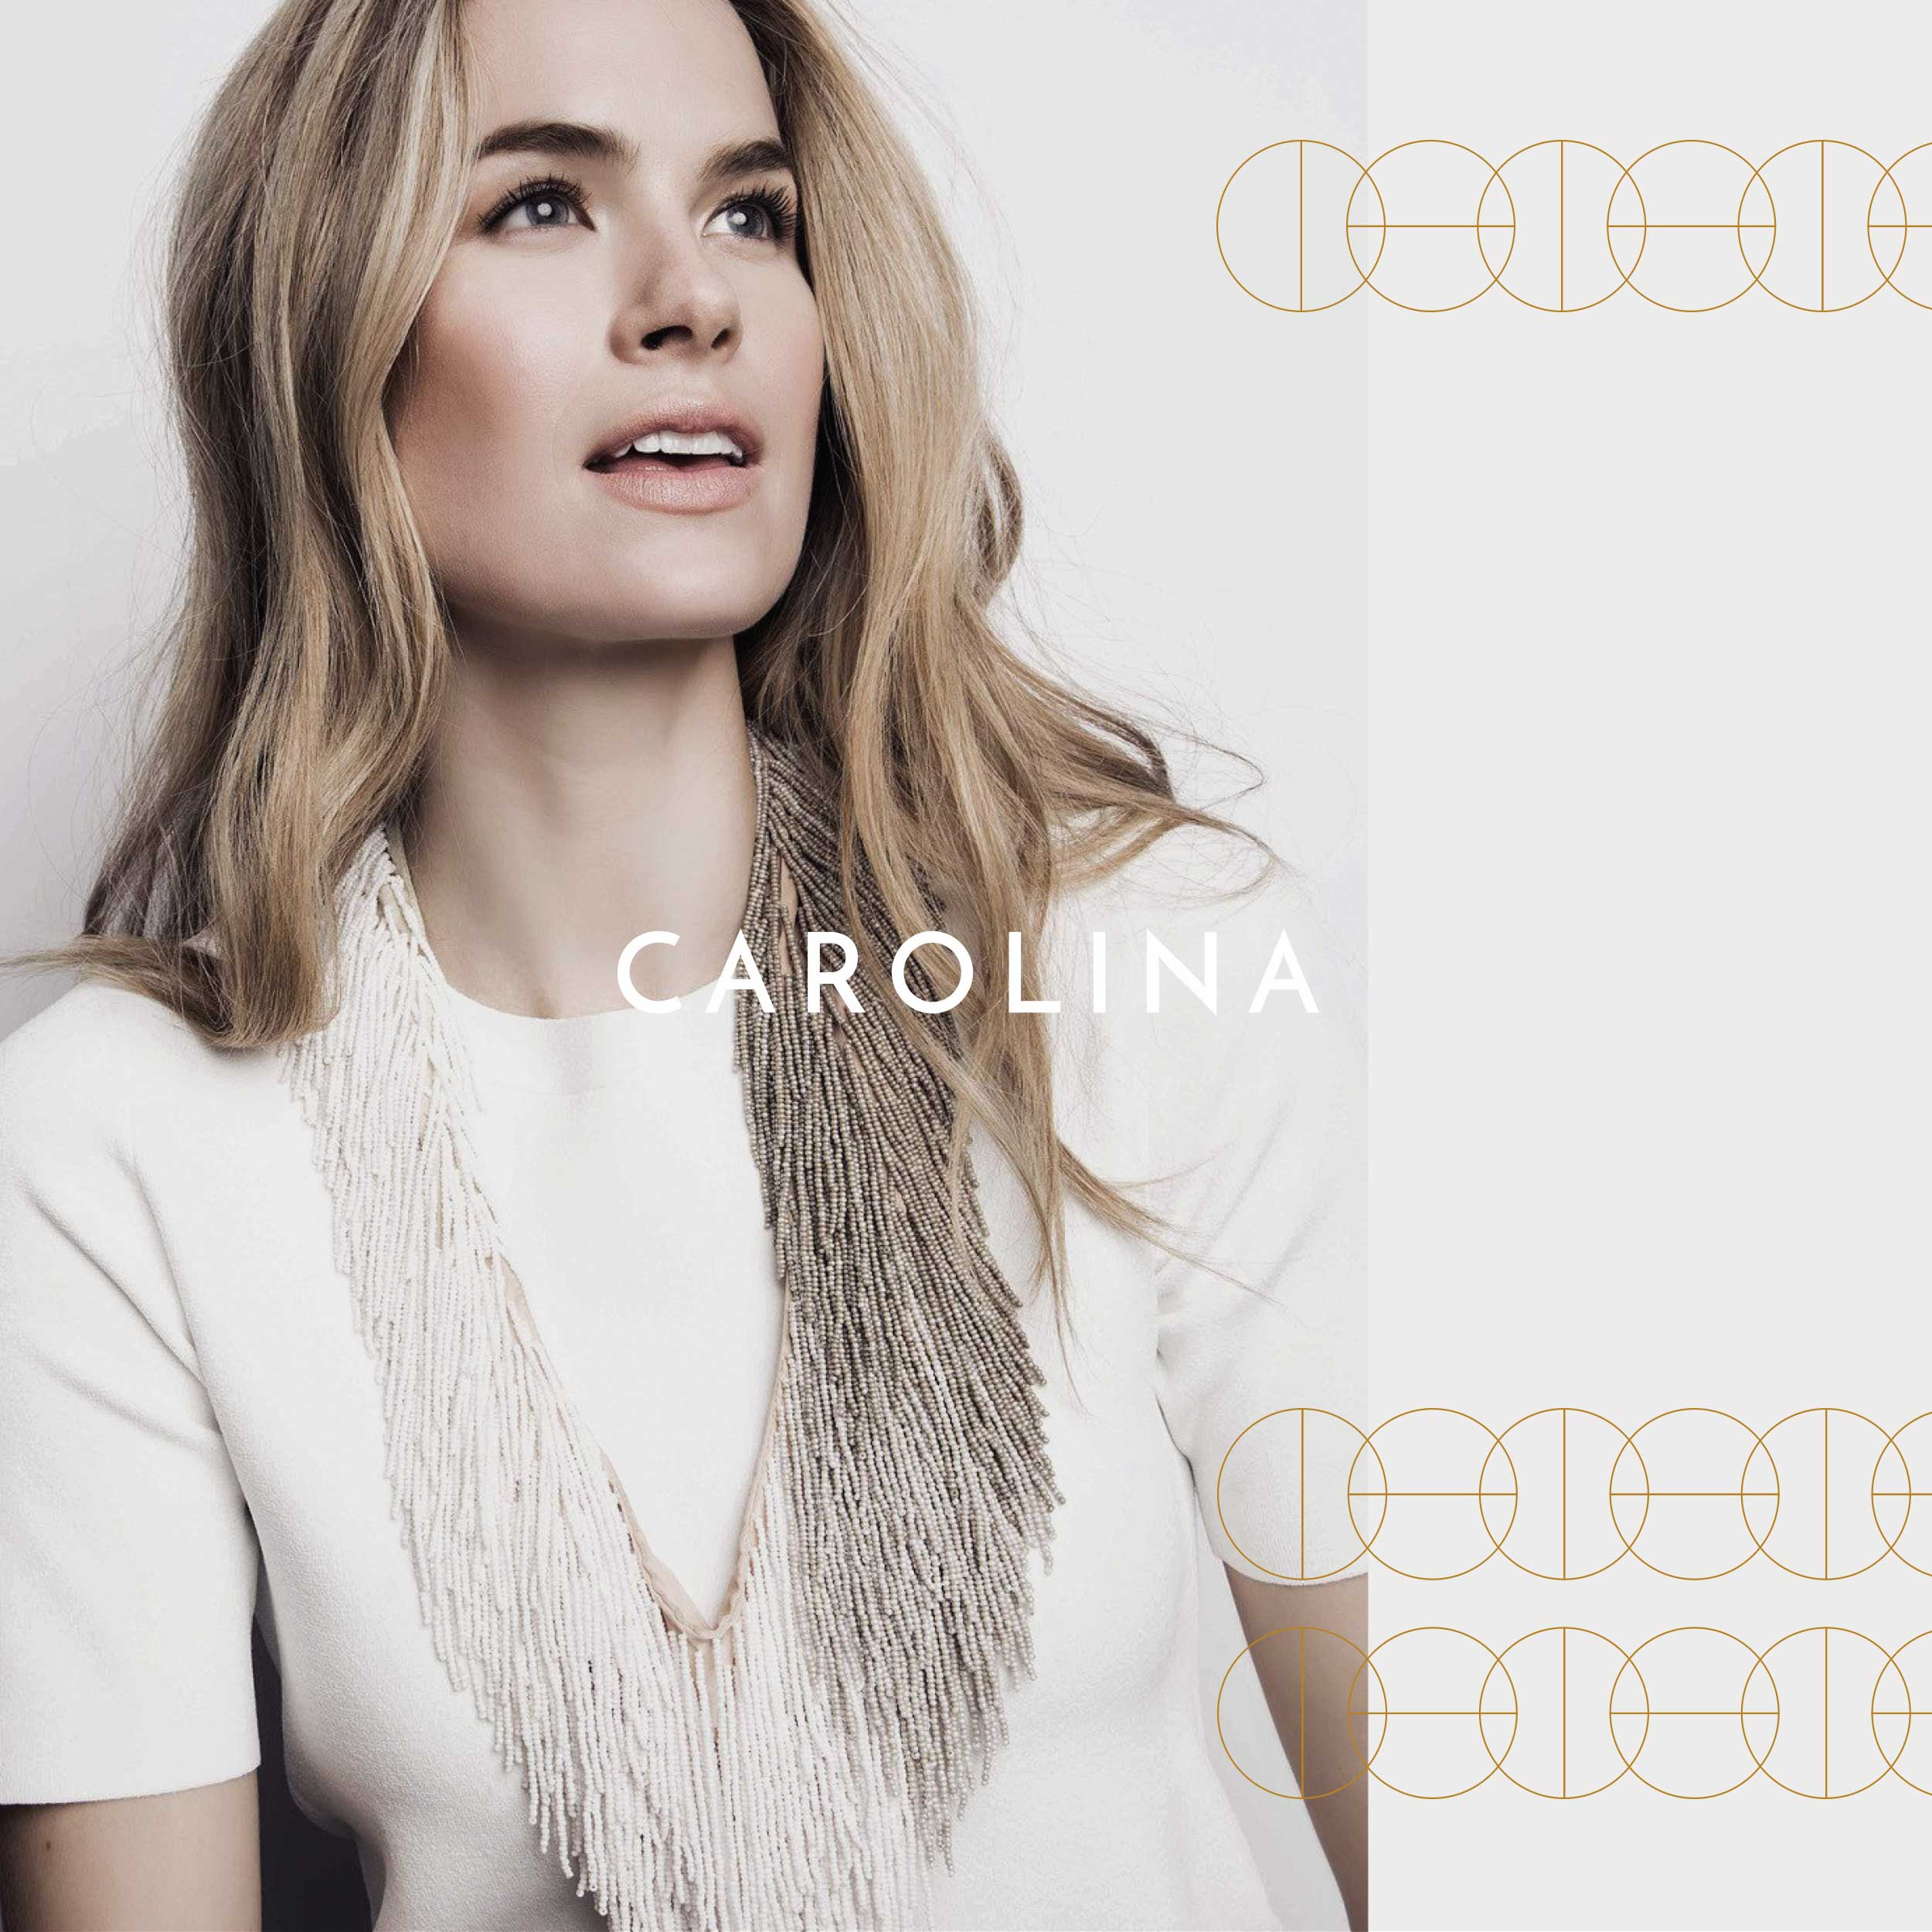 Fashionable woman for Carolina Boutique brand identity.